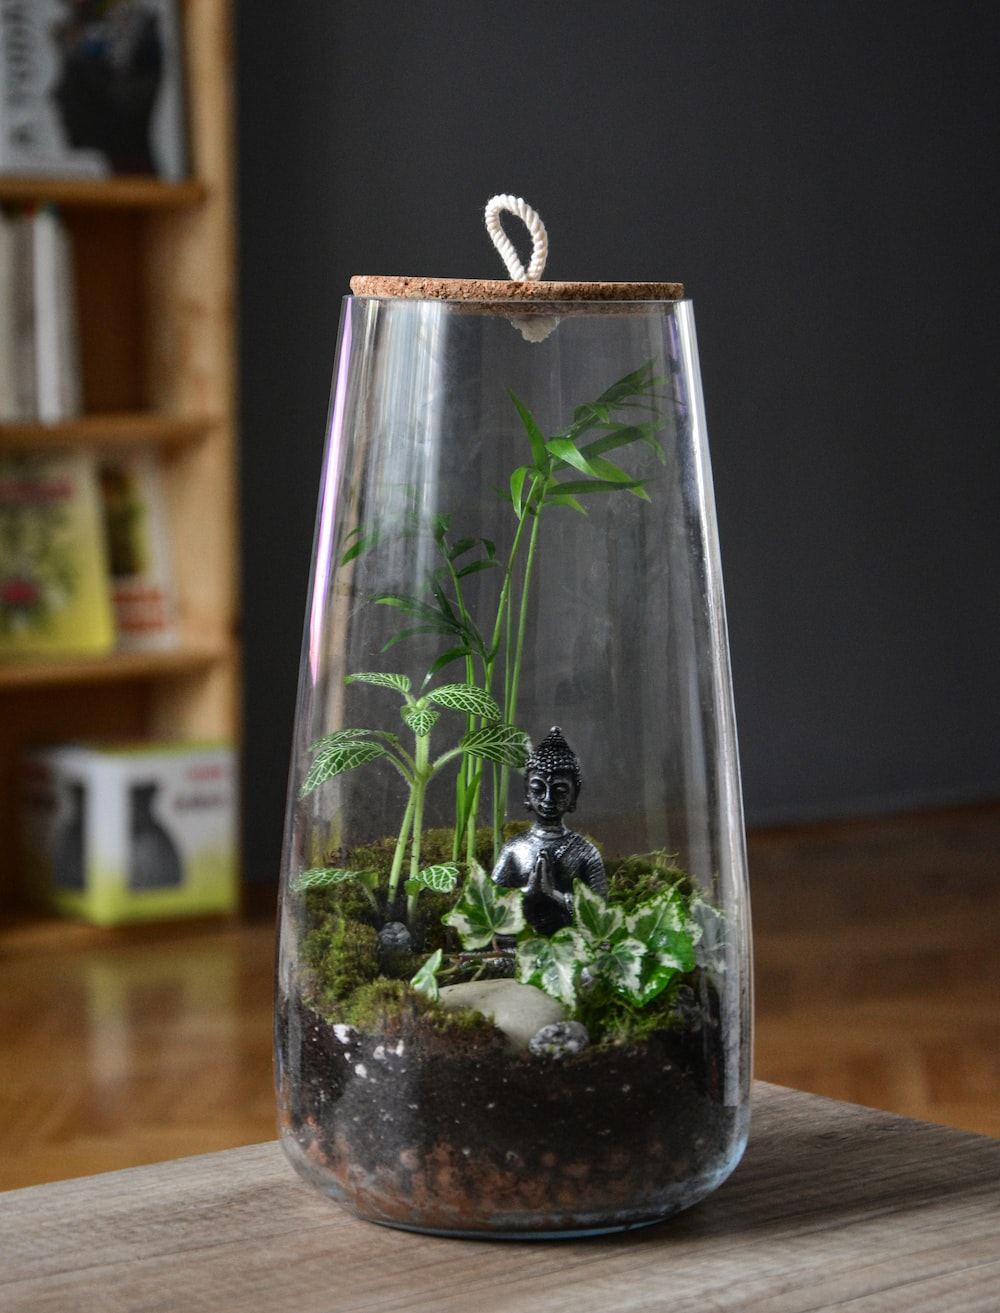 clear glass bottle with green plant